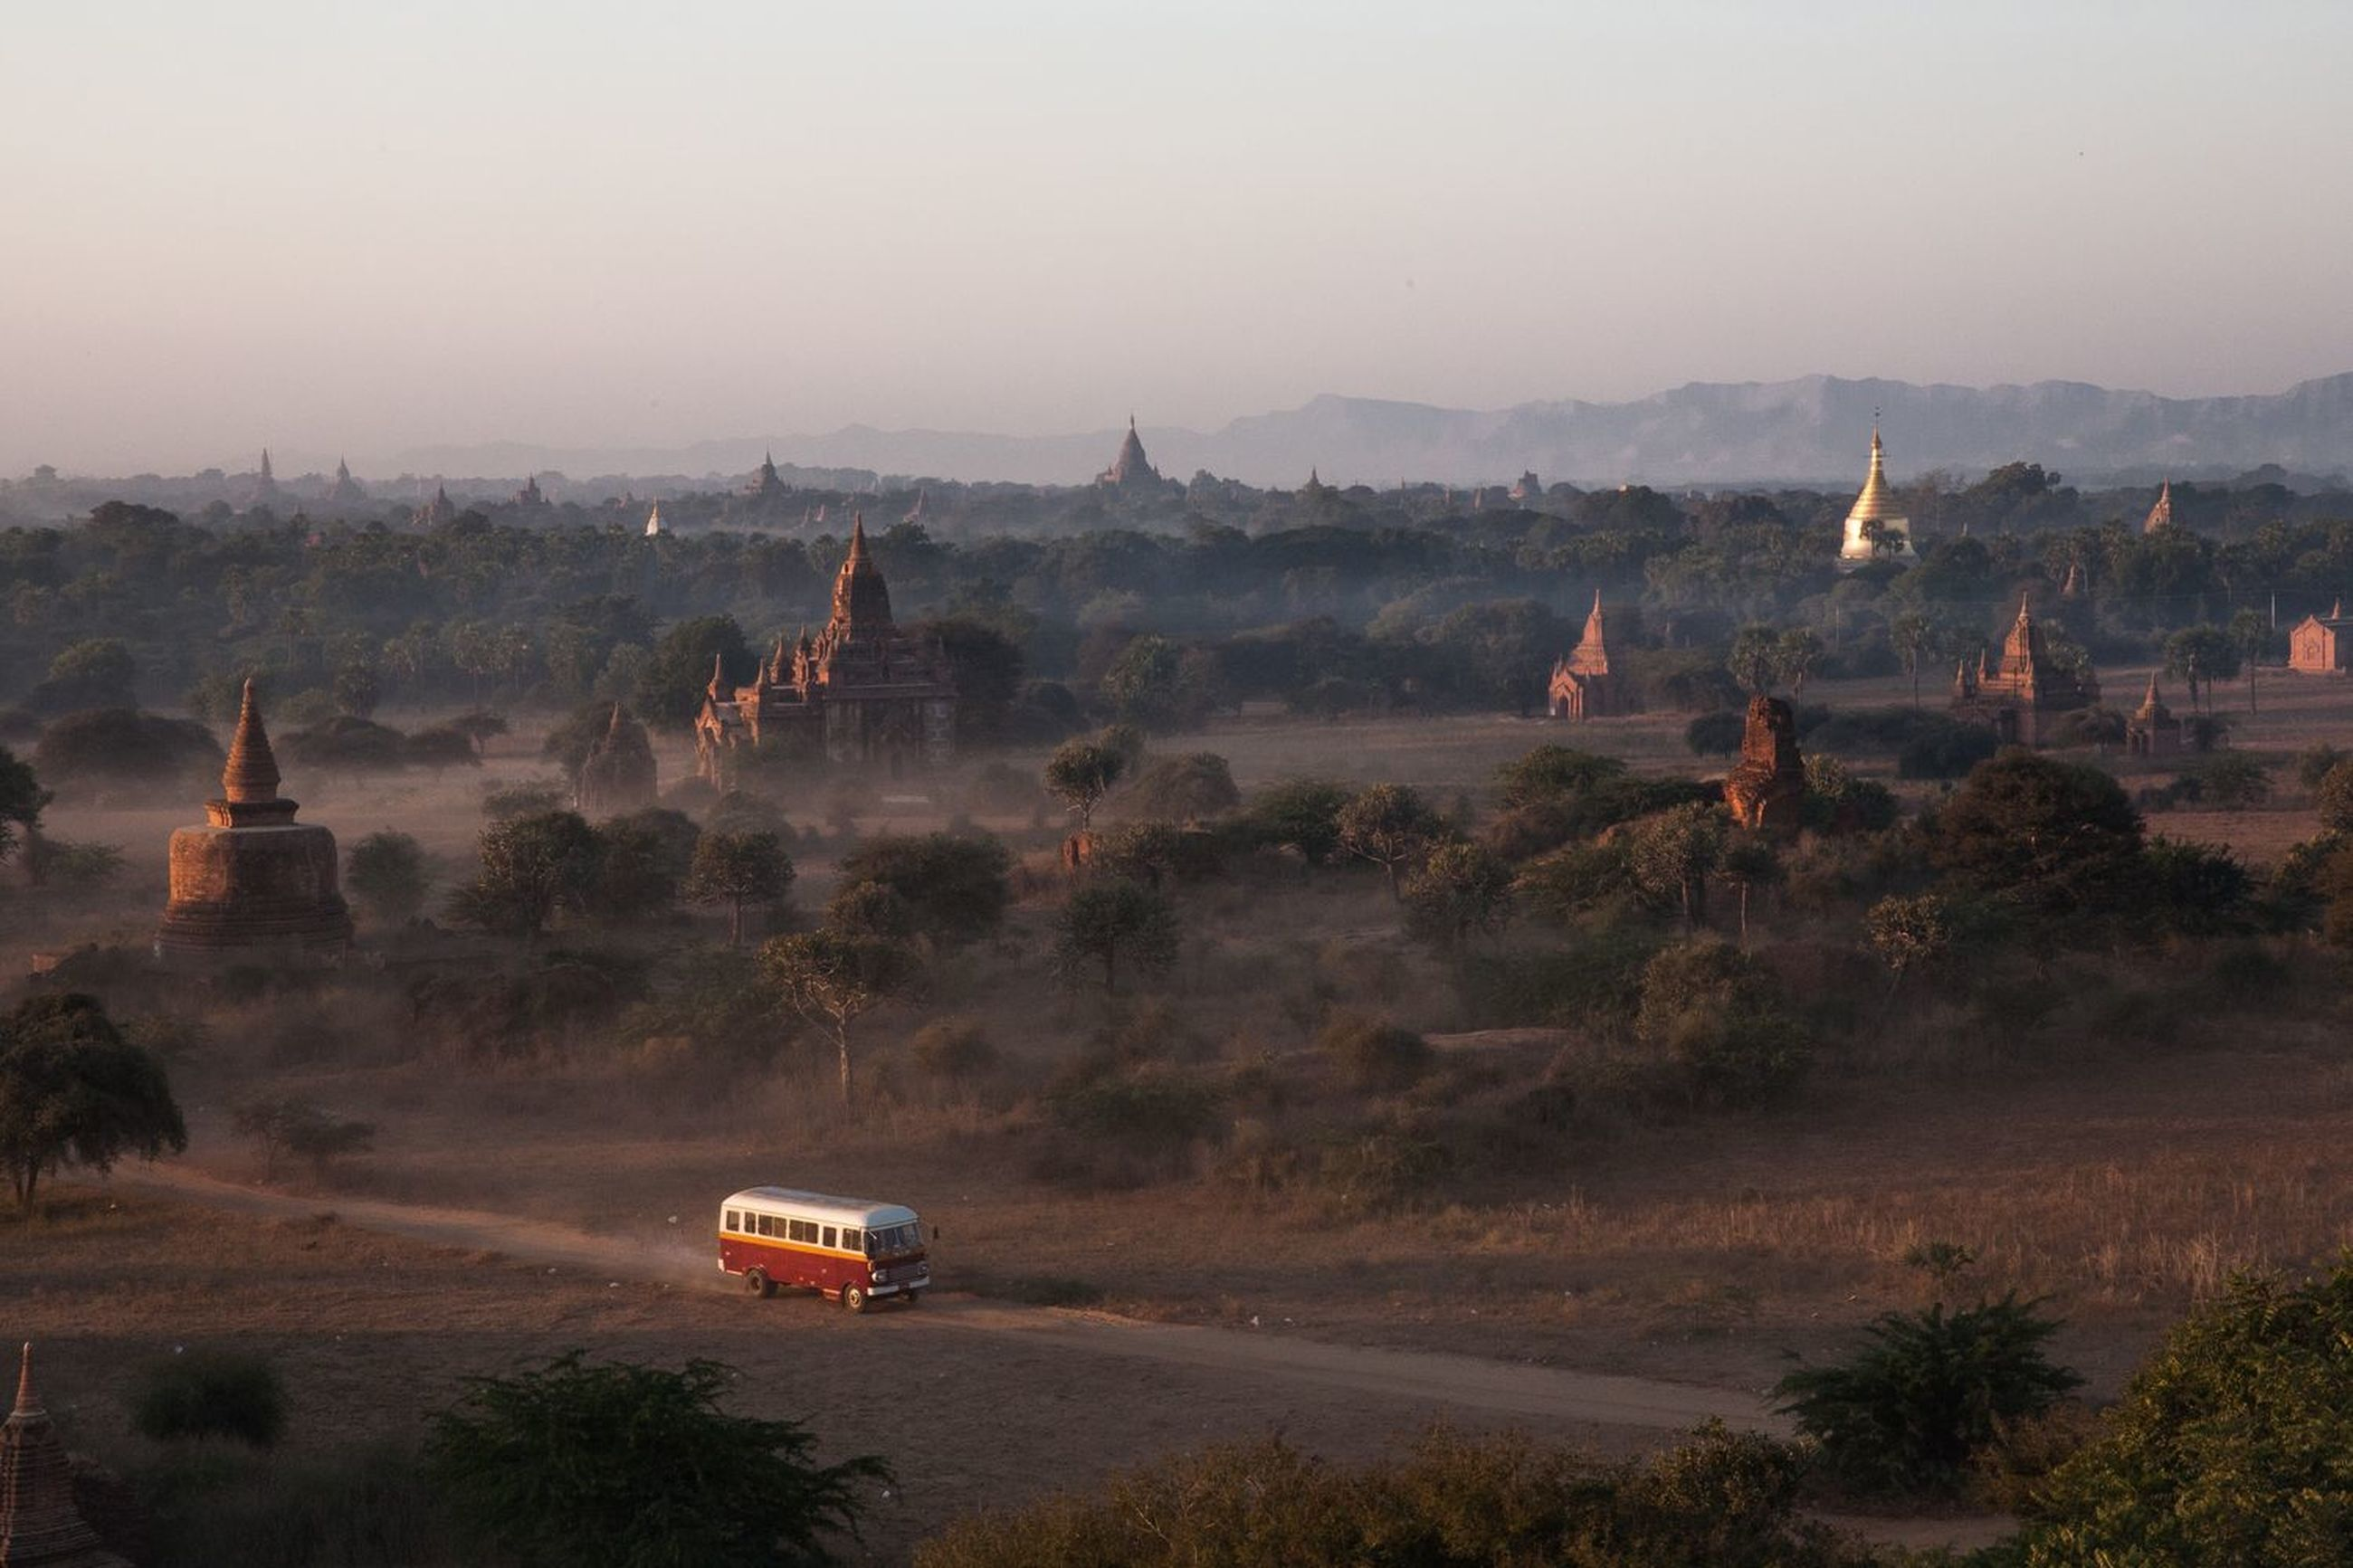 transportation, religion, landscape, place of worship, architecture, car, fog, travel, travel destinations, ancient, nature, outdoors, no people, tree, built structure, building exterior, day, hot air balloon, dawn, beauty in nature, ancient civilization, sky